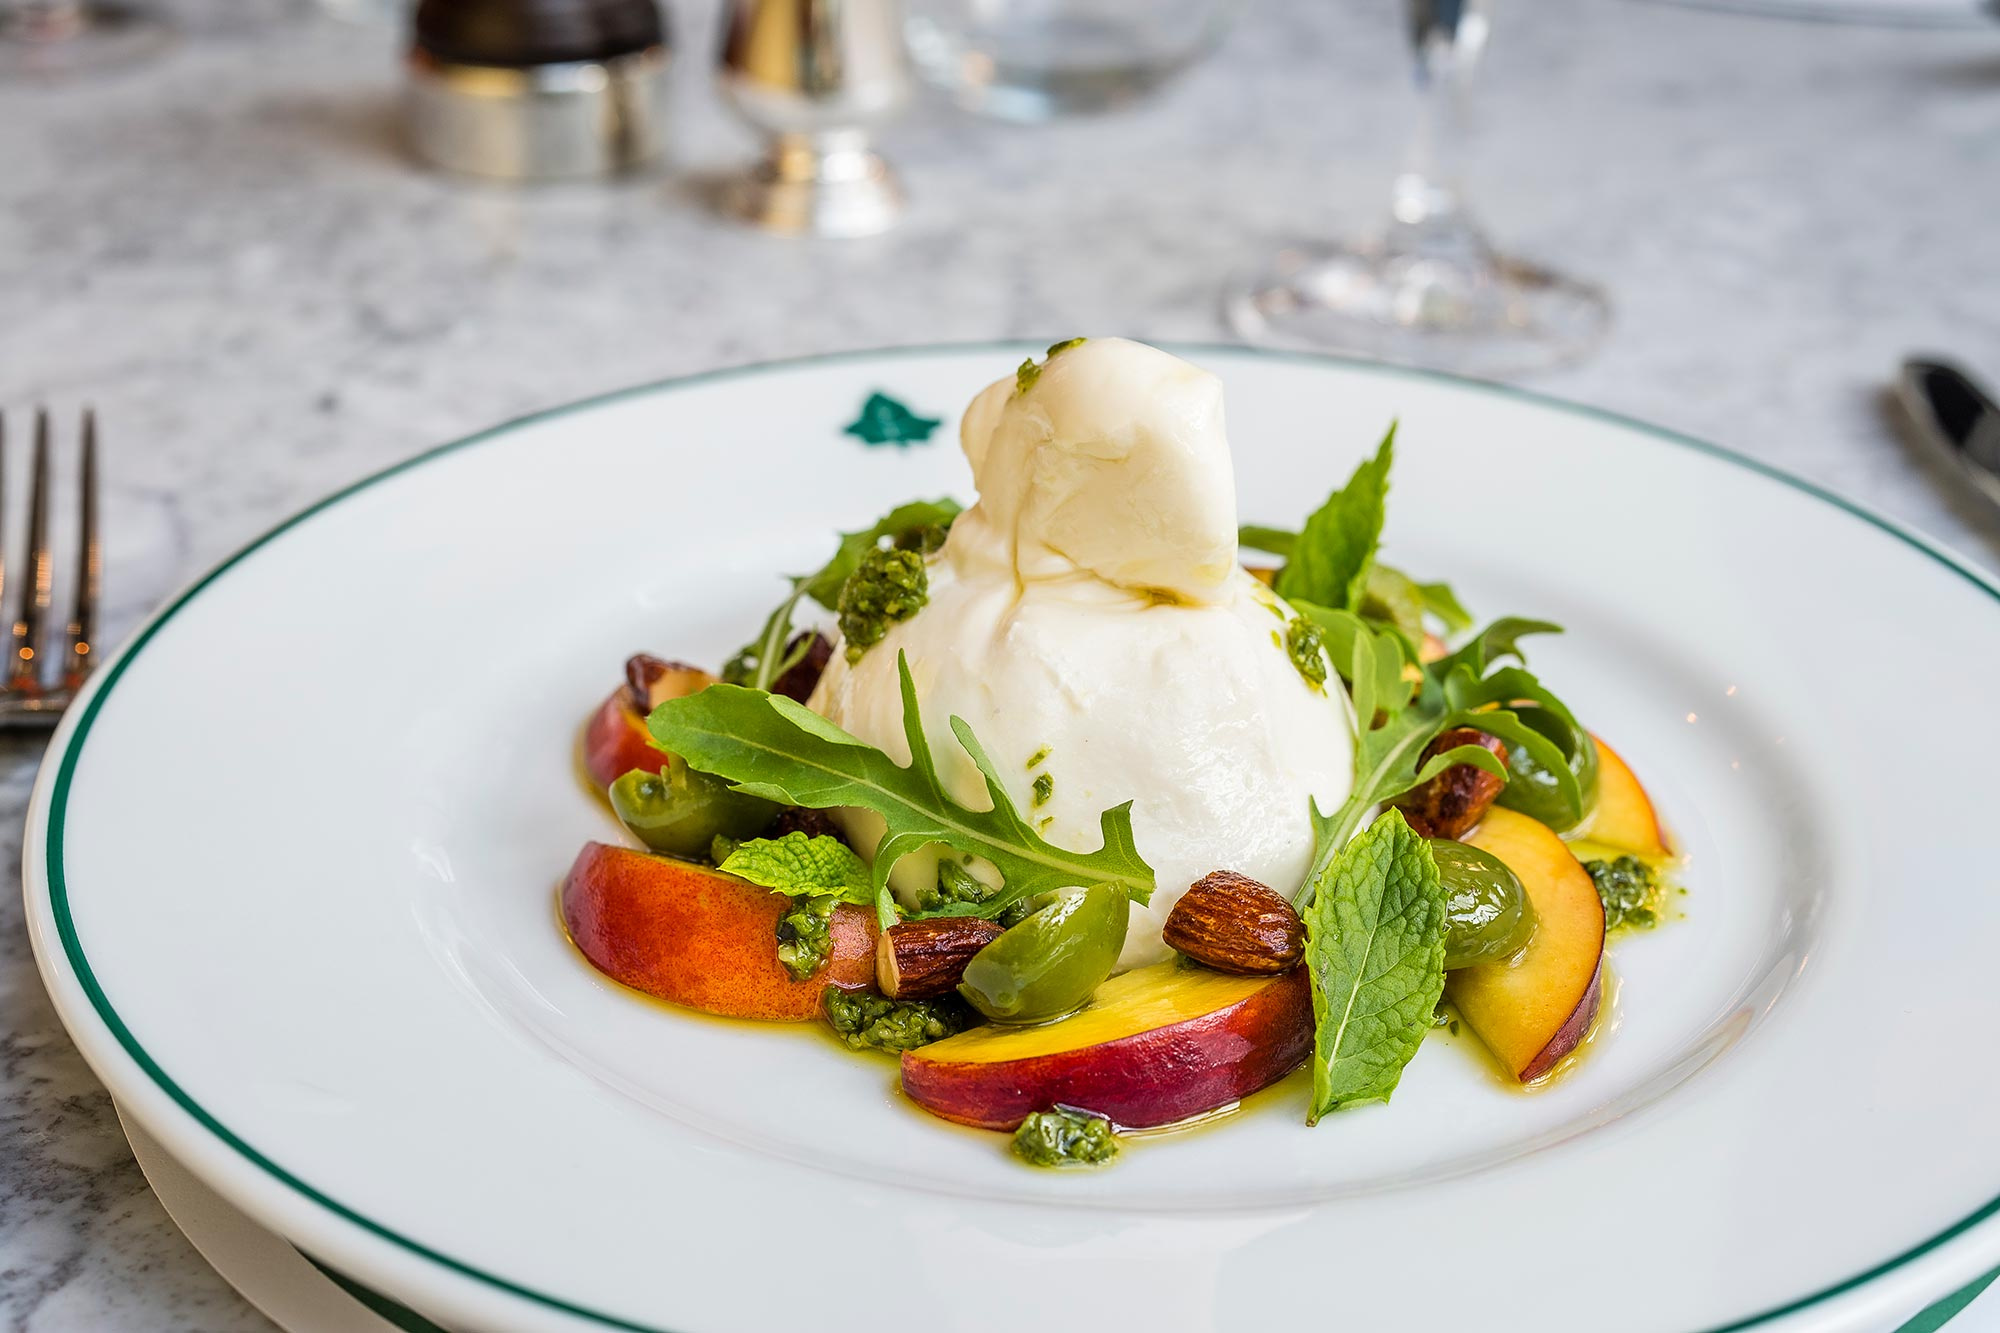 Burrata with Nocellara olive, pesto, rocket and almonds at The Ivy restaurants - The Ivy Café, Blackheath